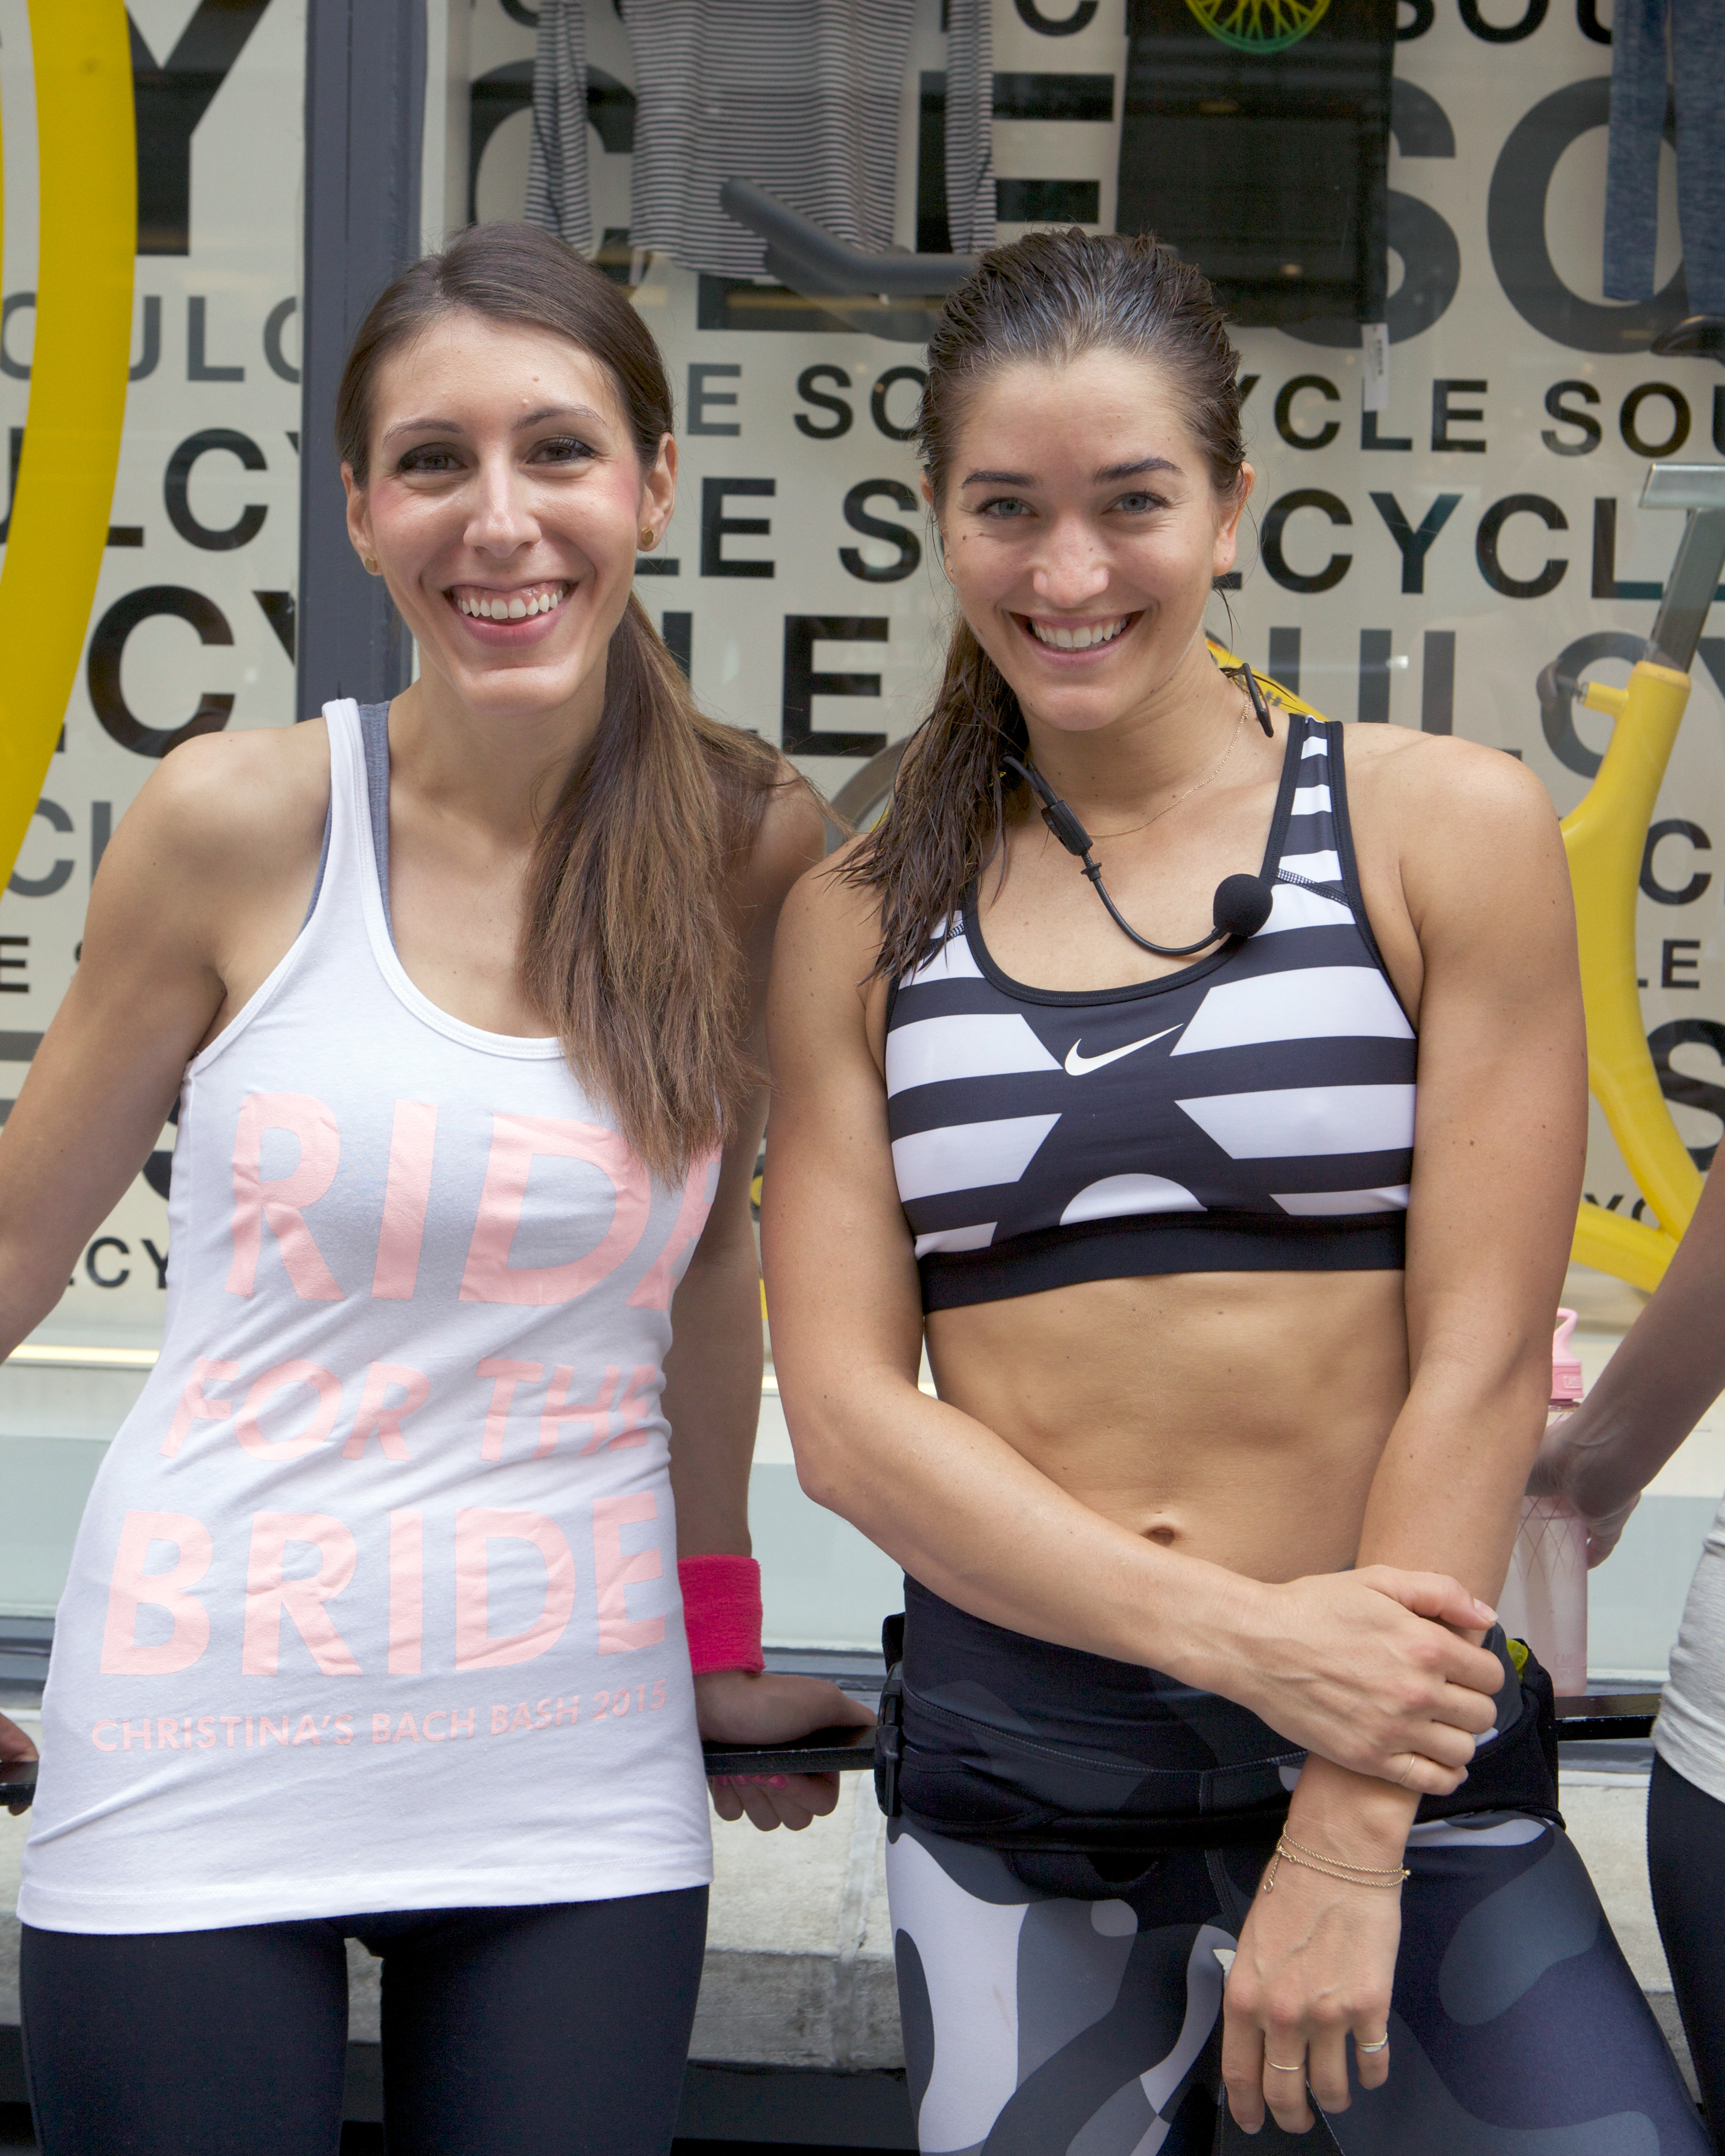 soulcycle-christina-bachelorette-party-instructor-jaws-0815.jpg